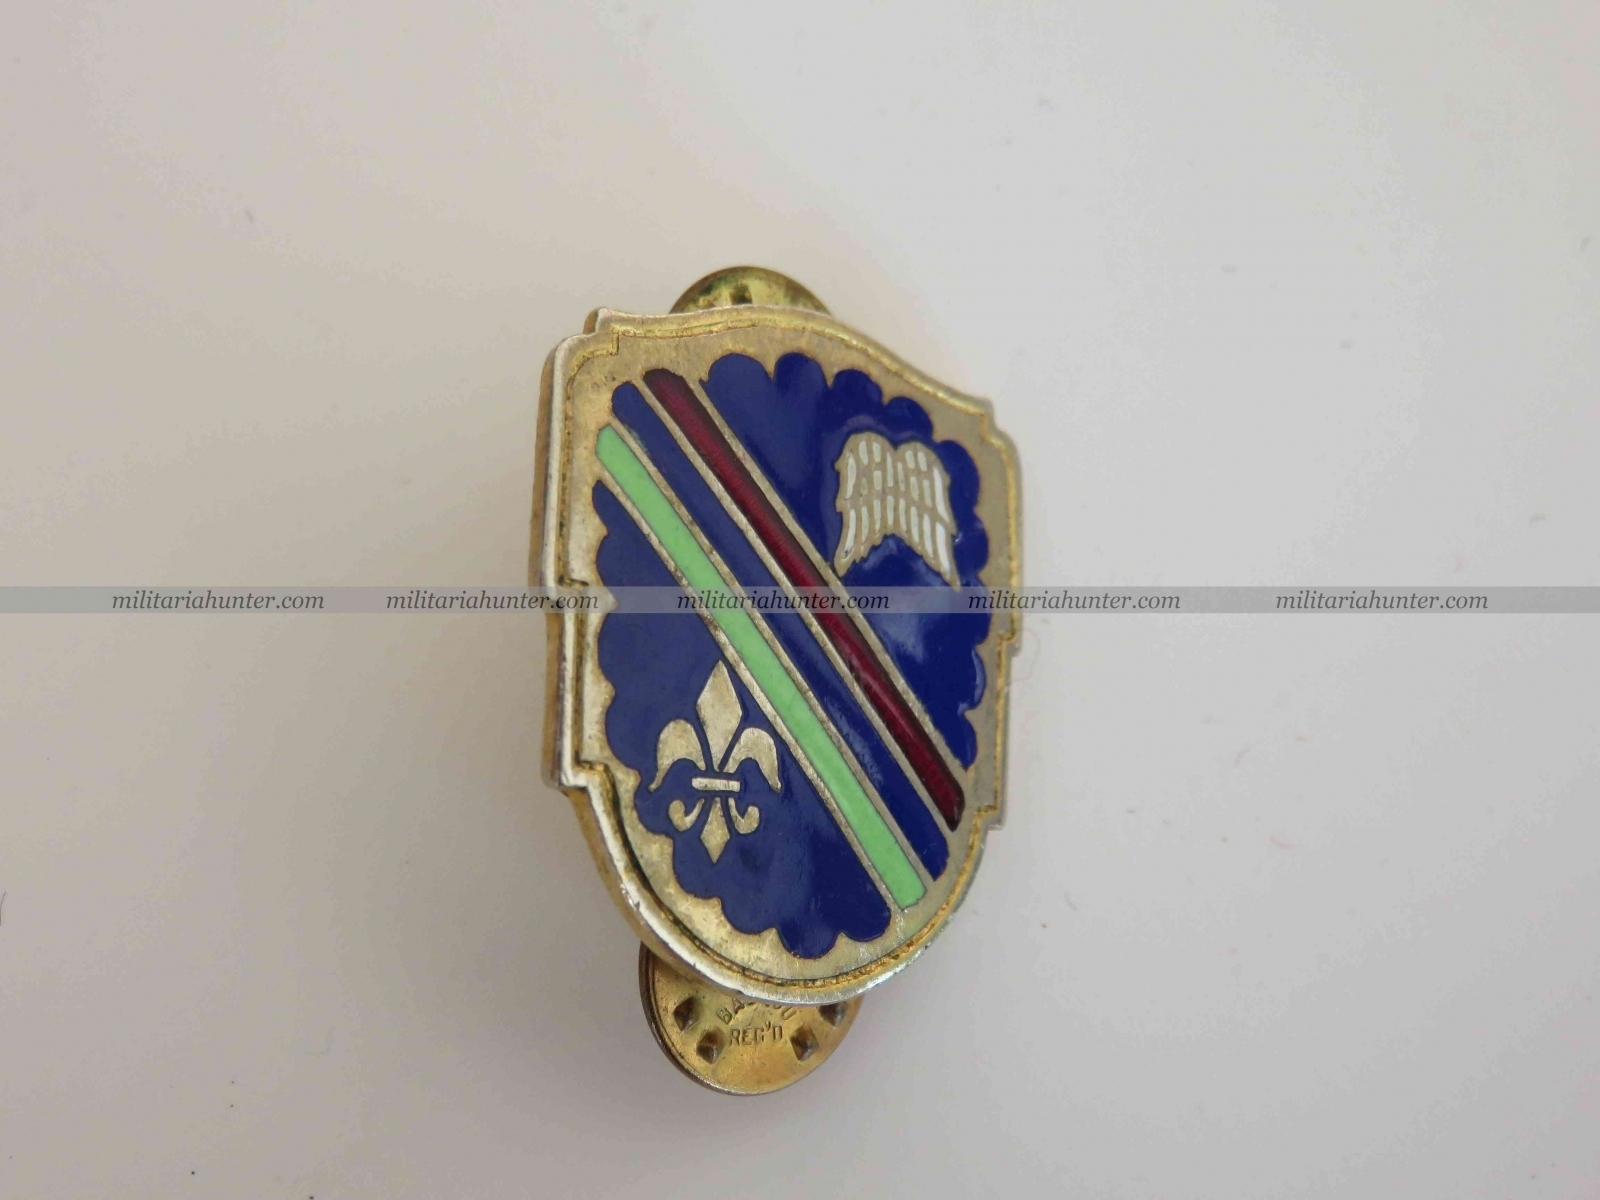 militaria : US Army 160th Infantry Regiment crest